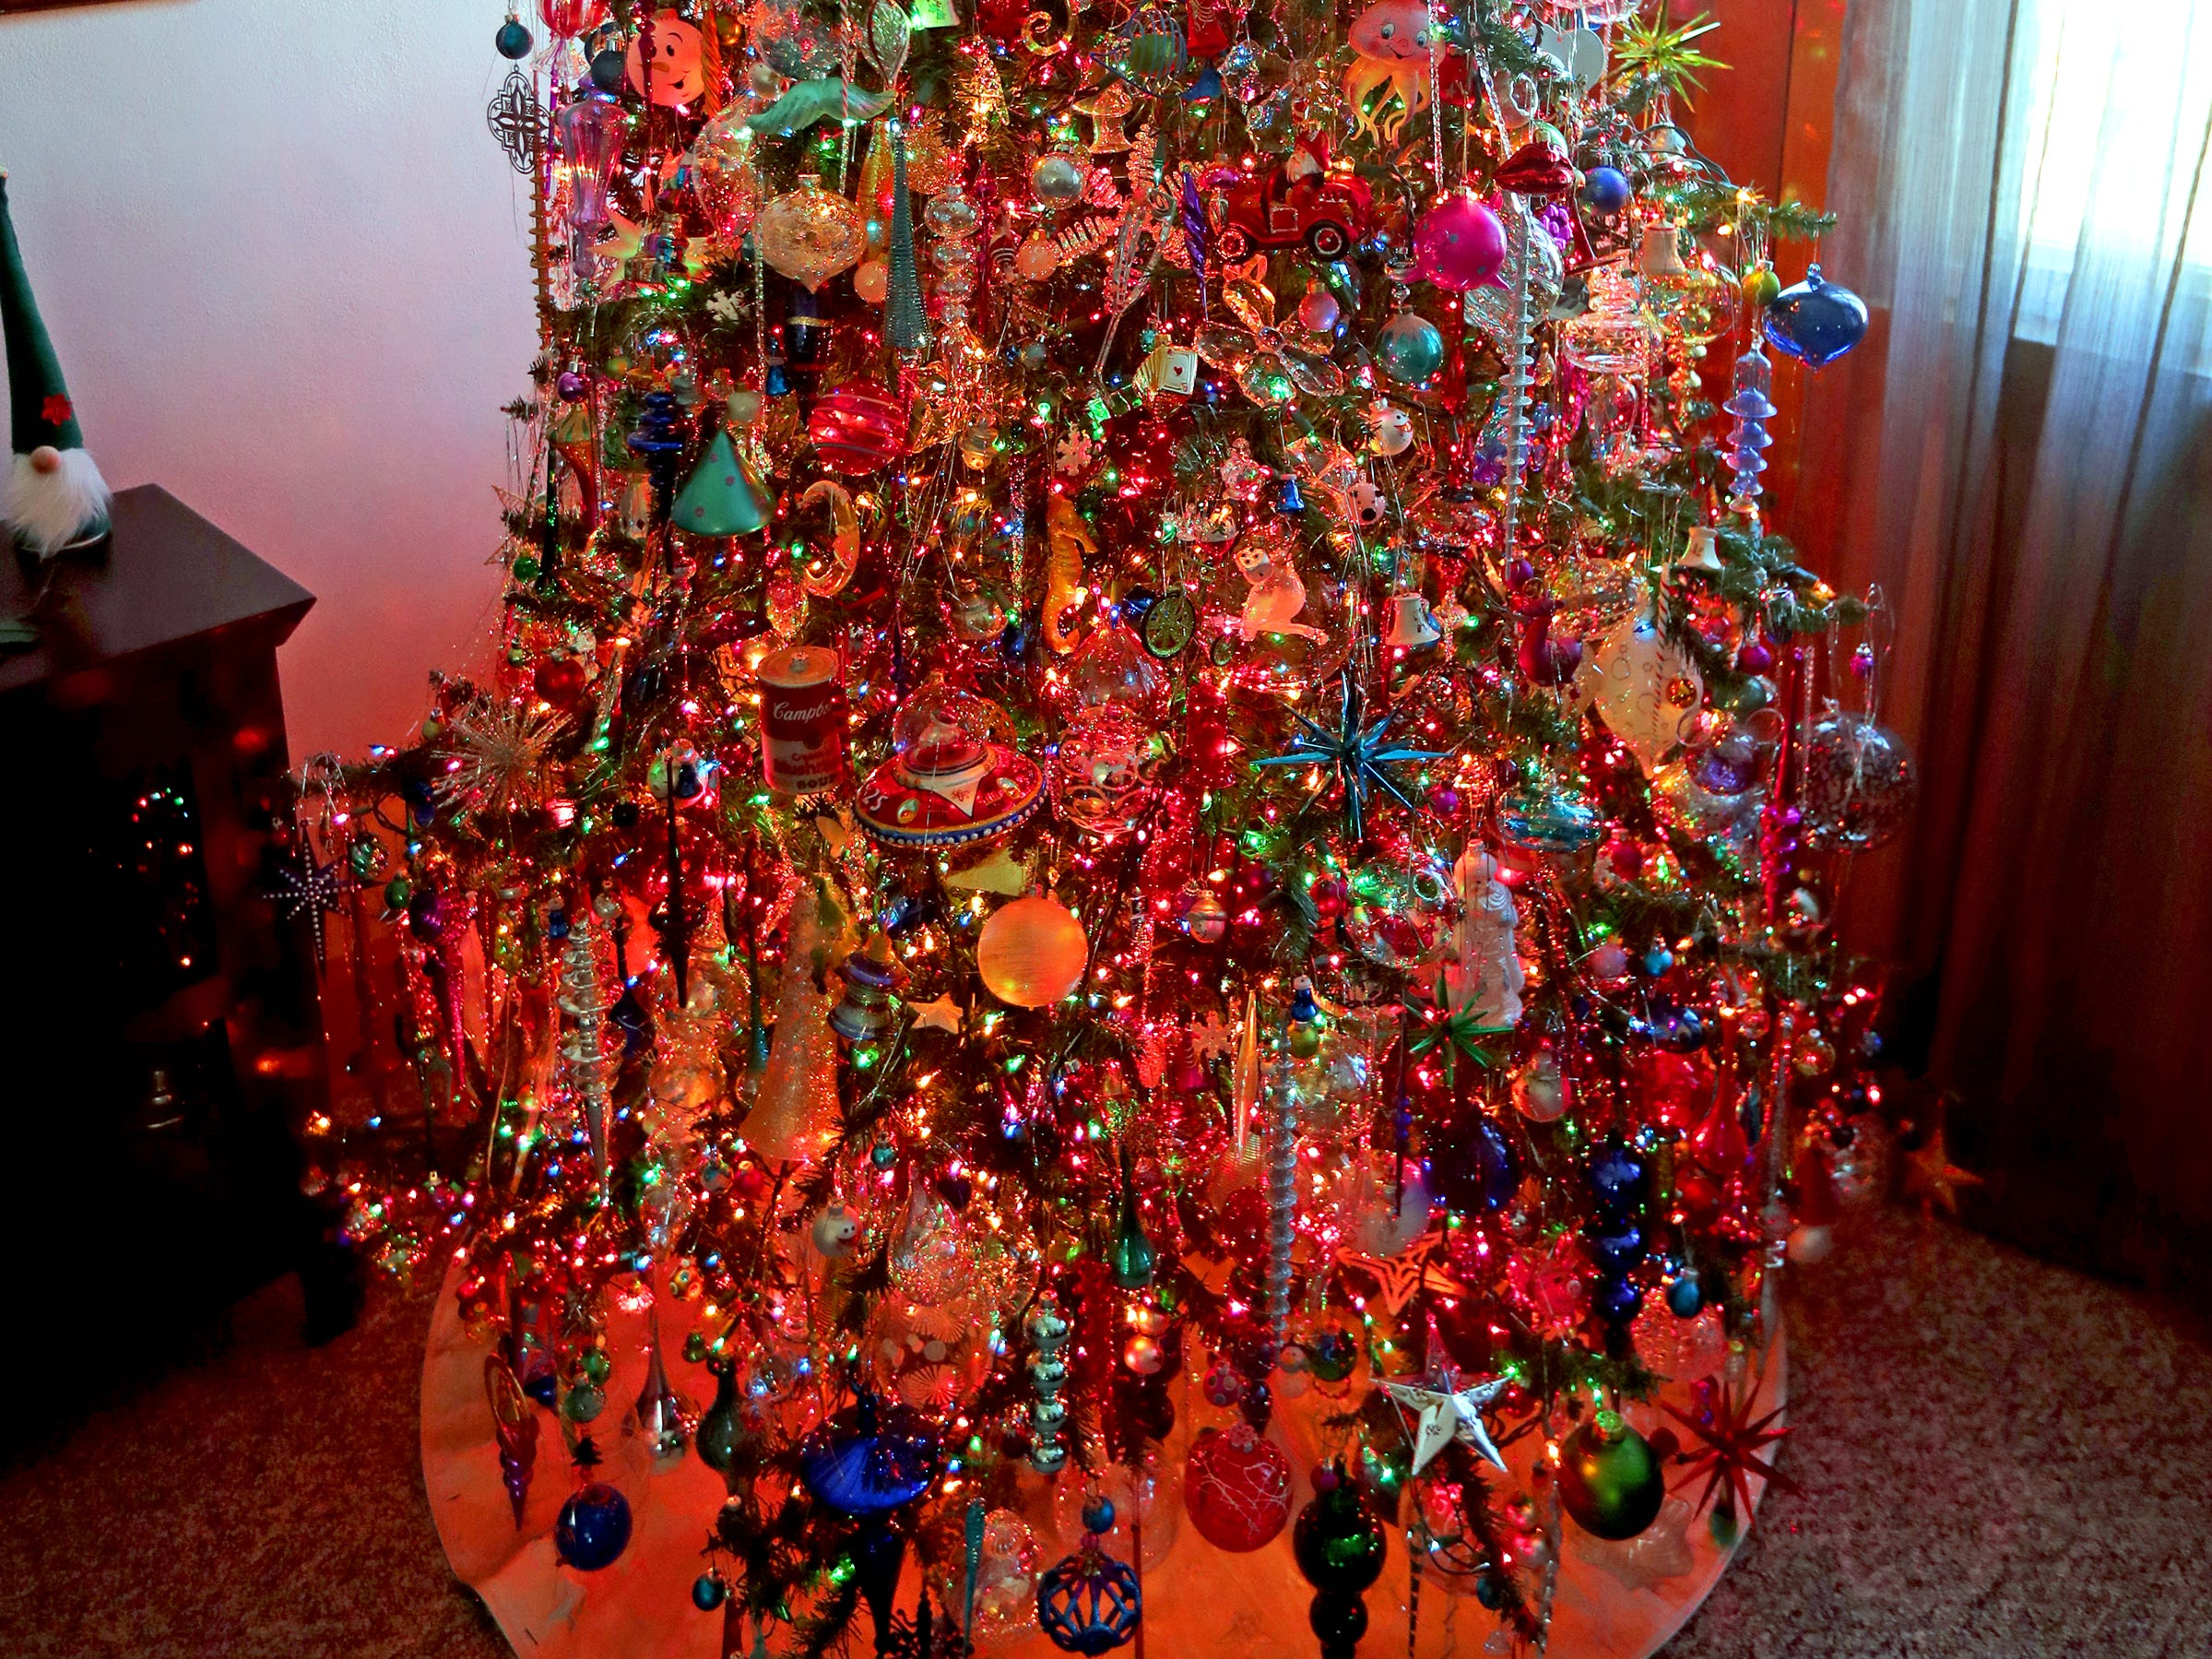 More than 5,000 lights and perhaps 1,000 ornaments adorn the 6 1/2-foot tree in Kim Harrison's home.